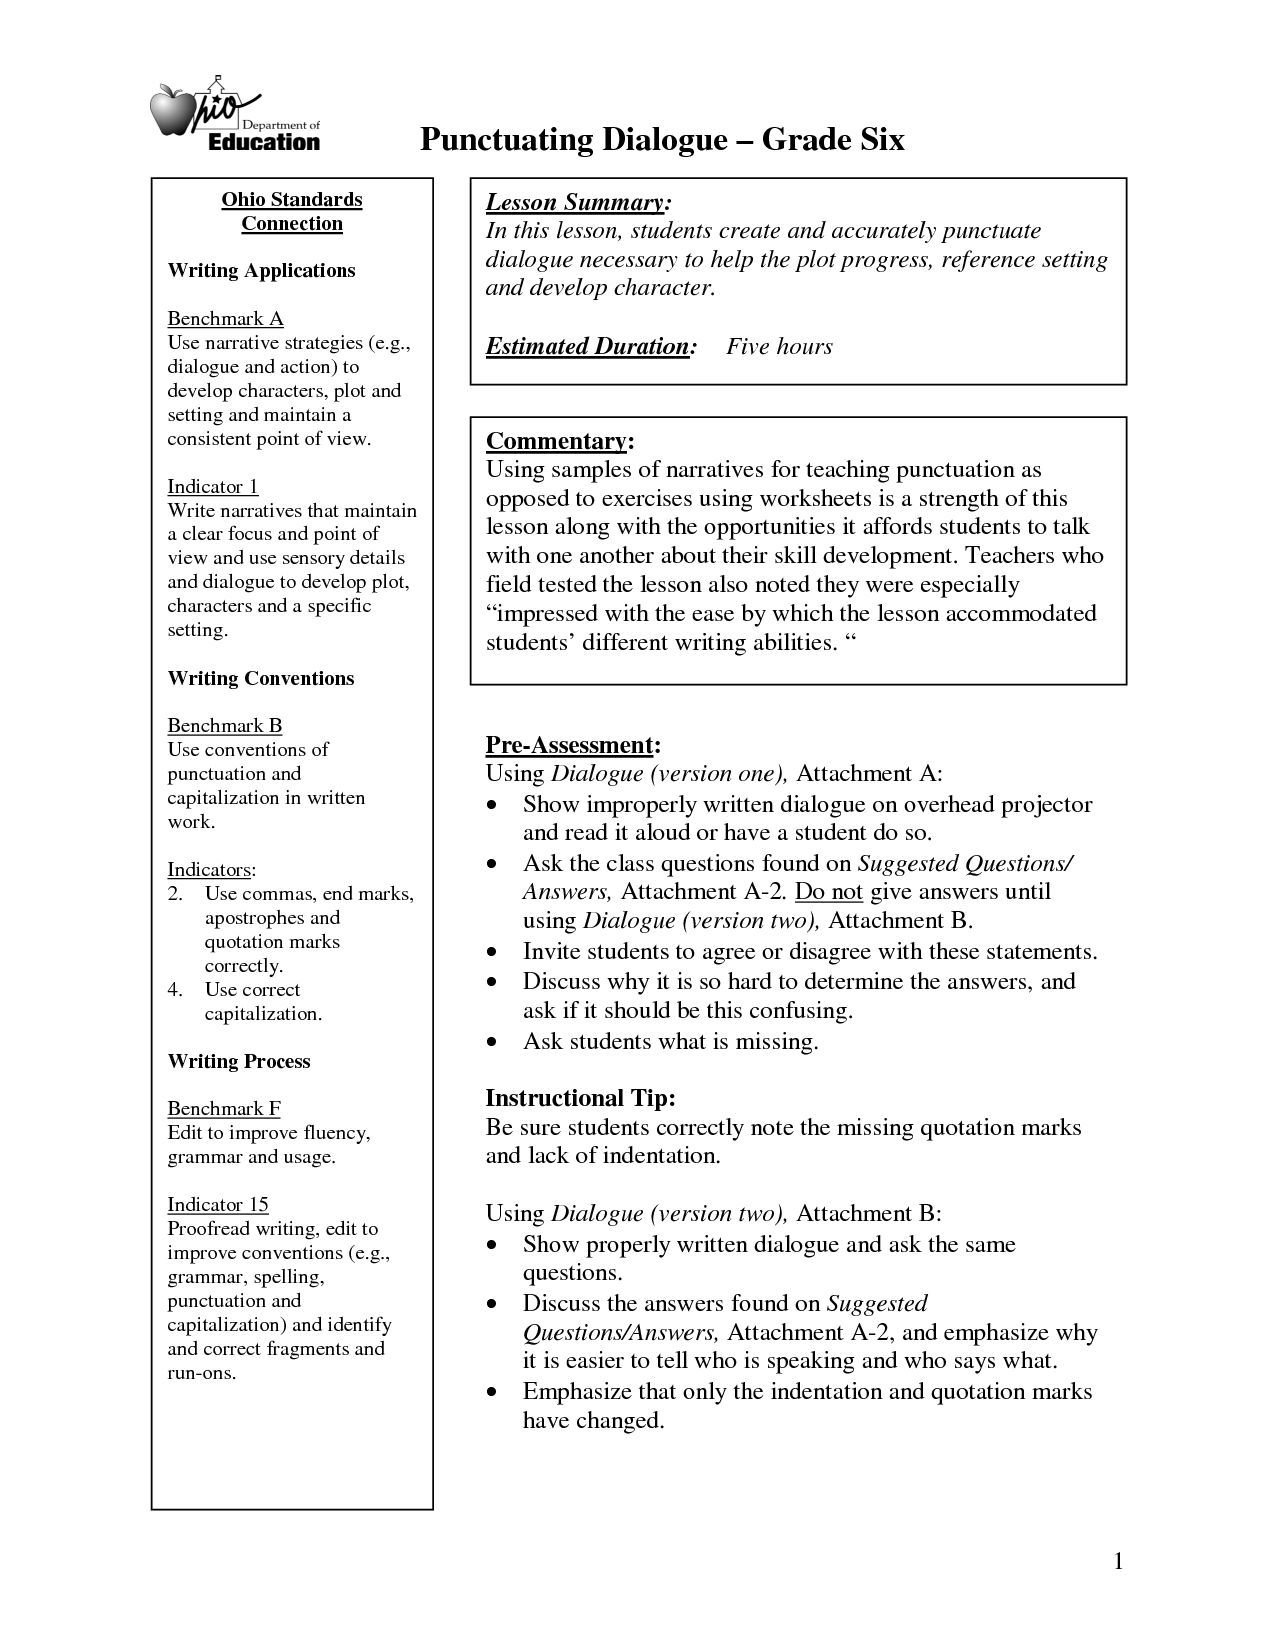 Dialogue Writing Worksheet